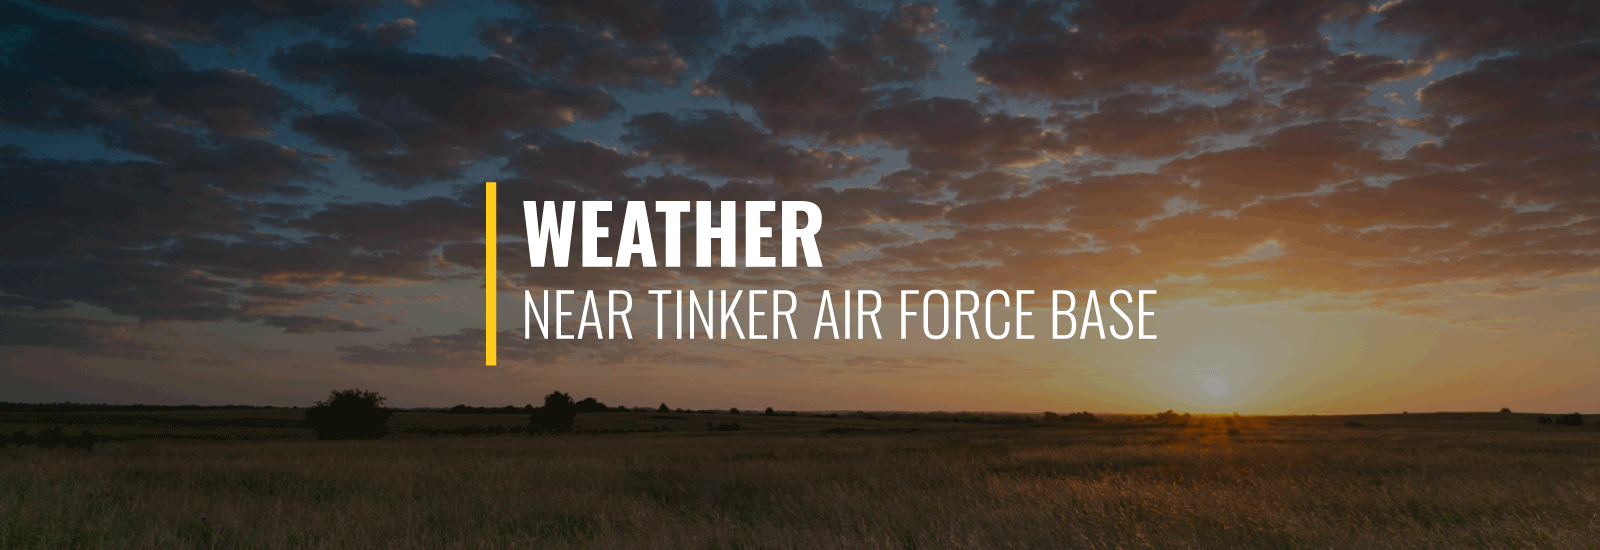 Tinker AFB Weather